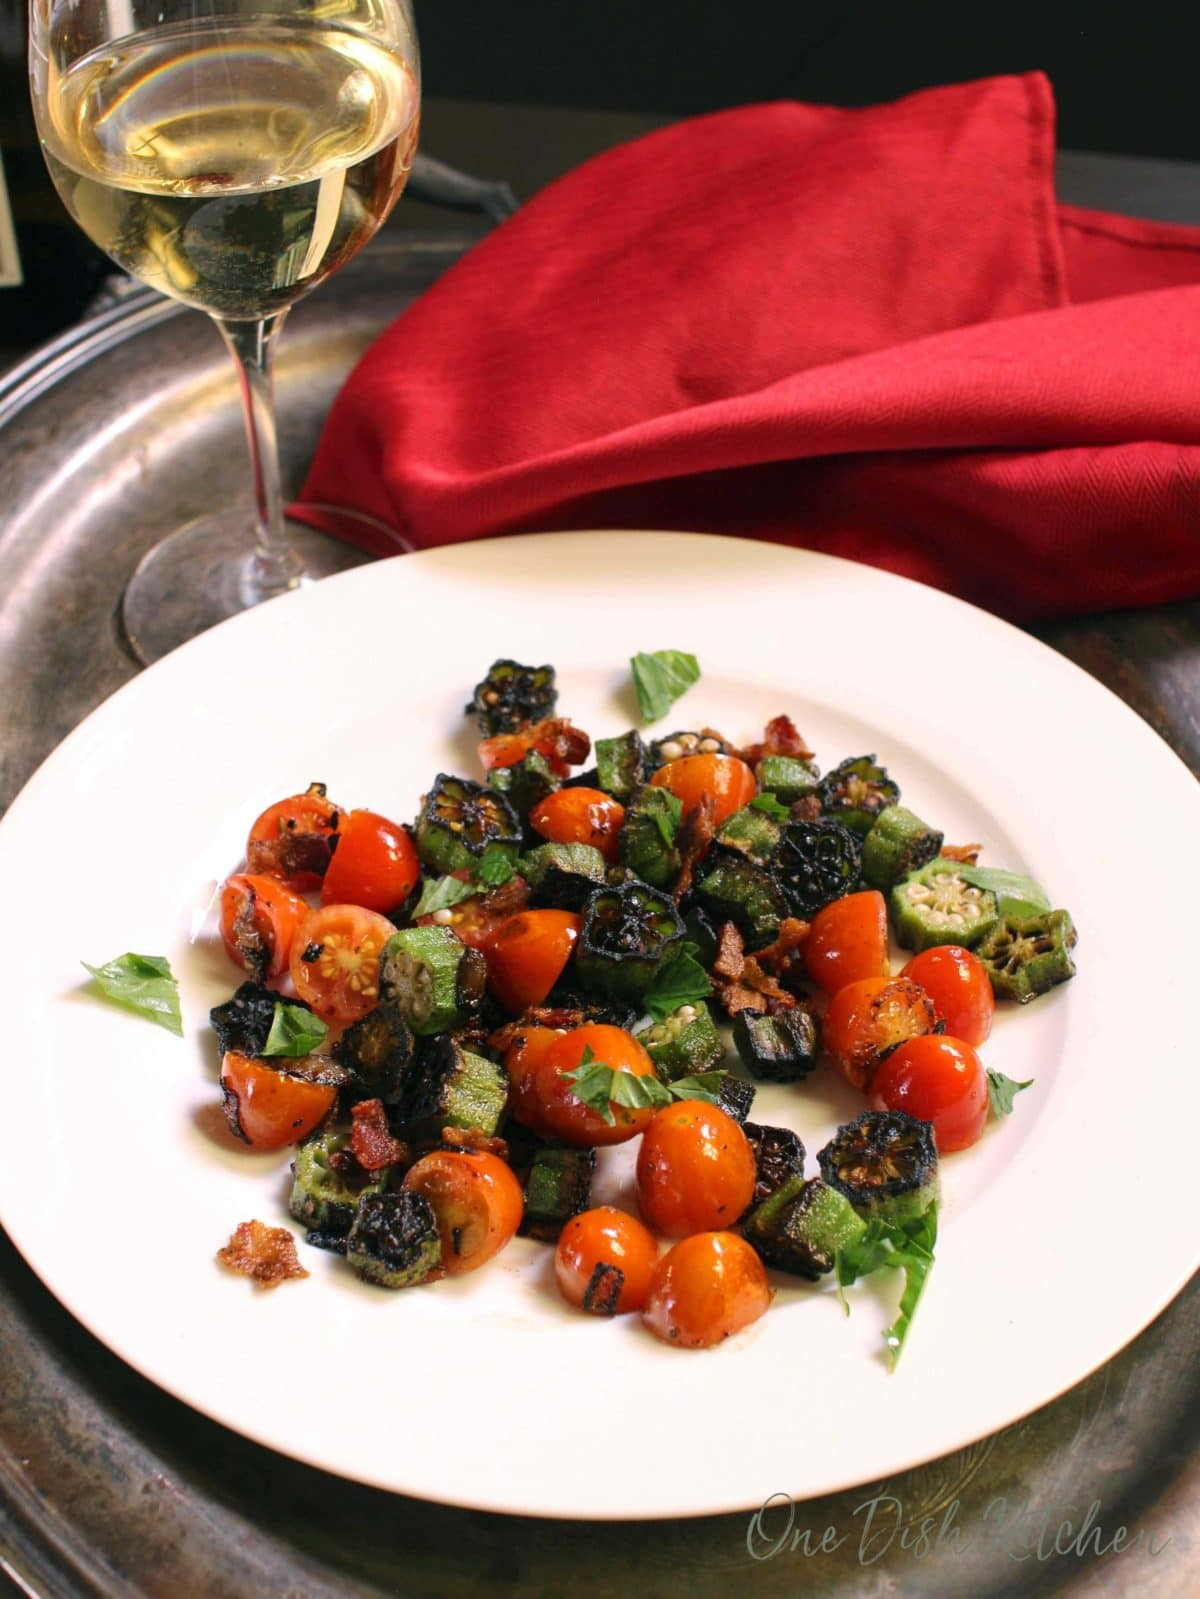 Fried okra, bacon, and tomatoes plated on a metal tray with a glass of white wine and a red cloth napkin